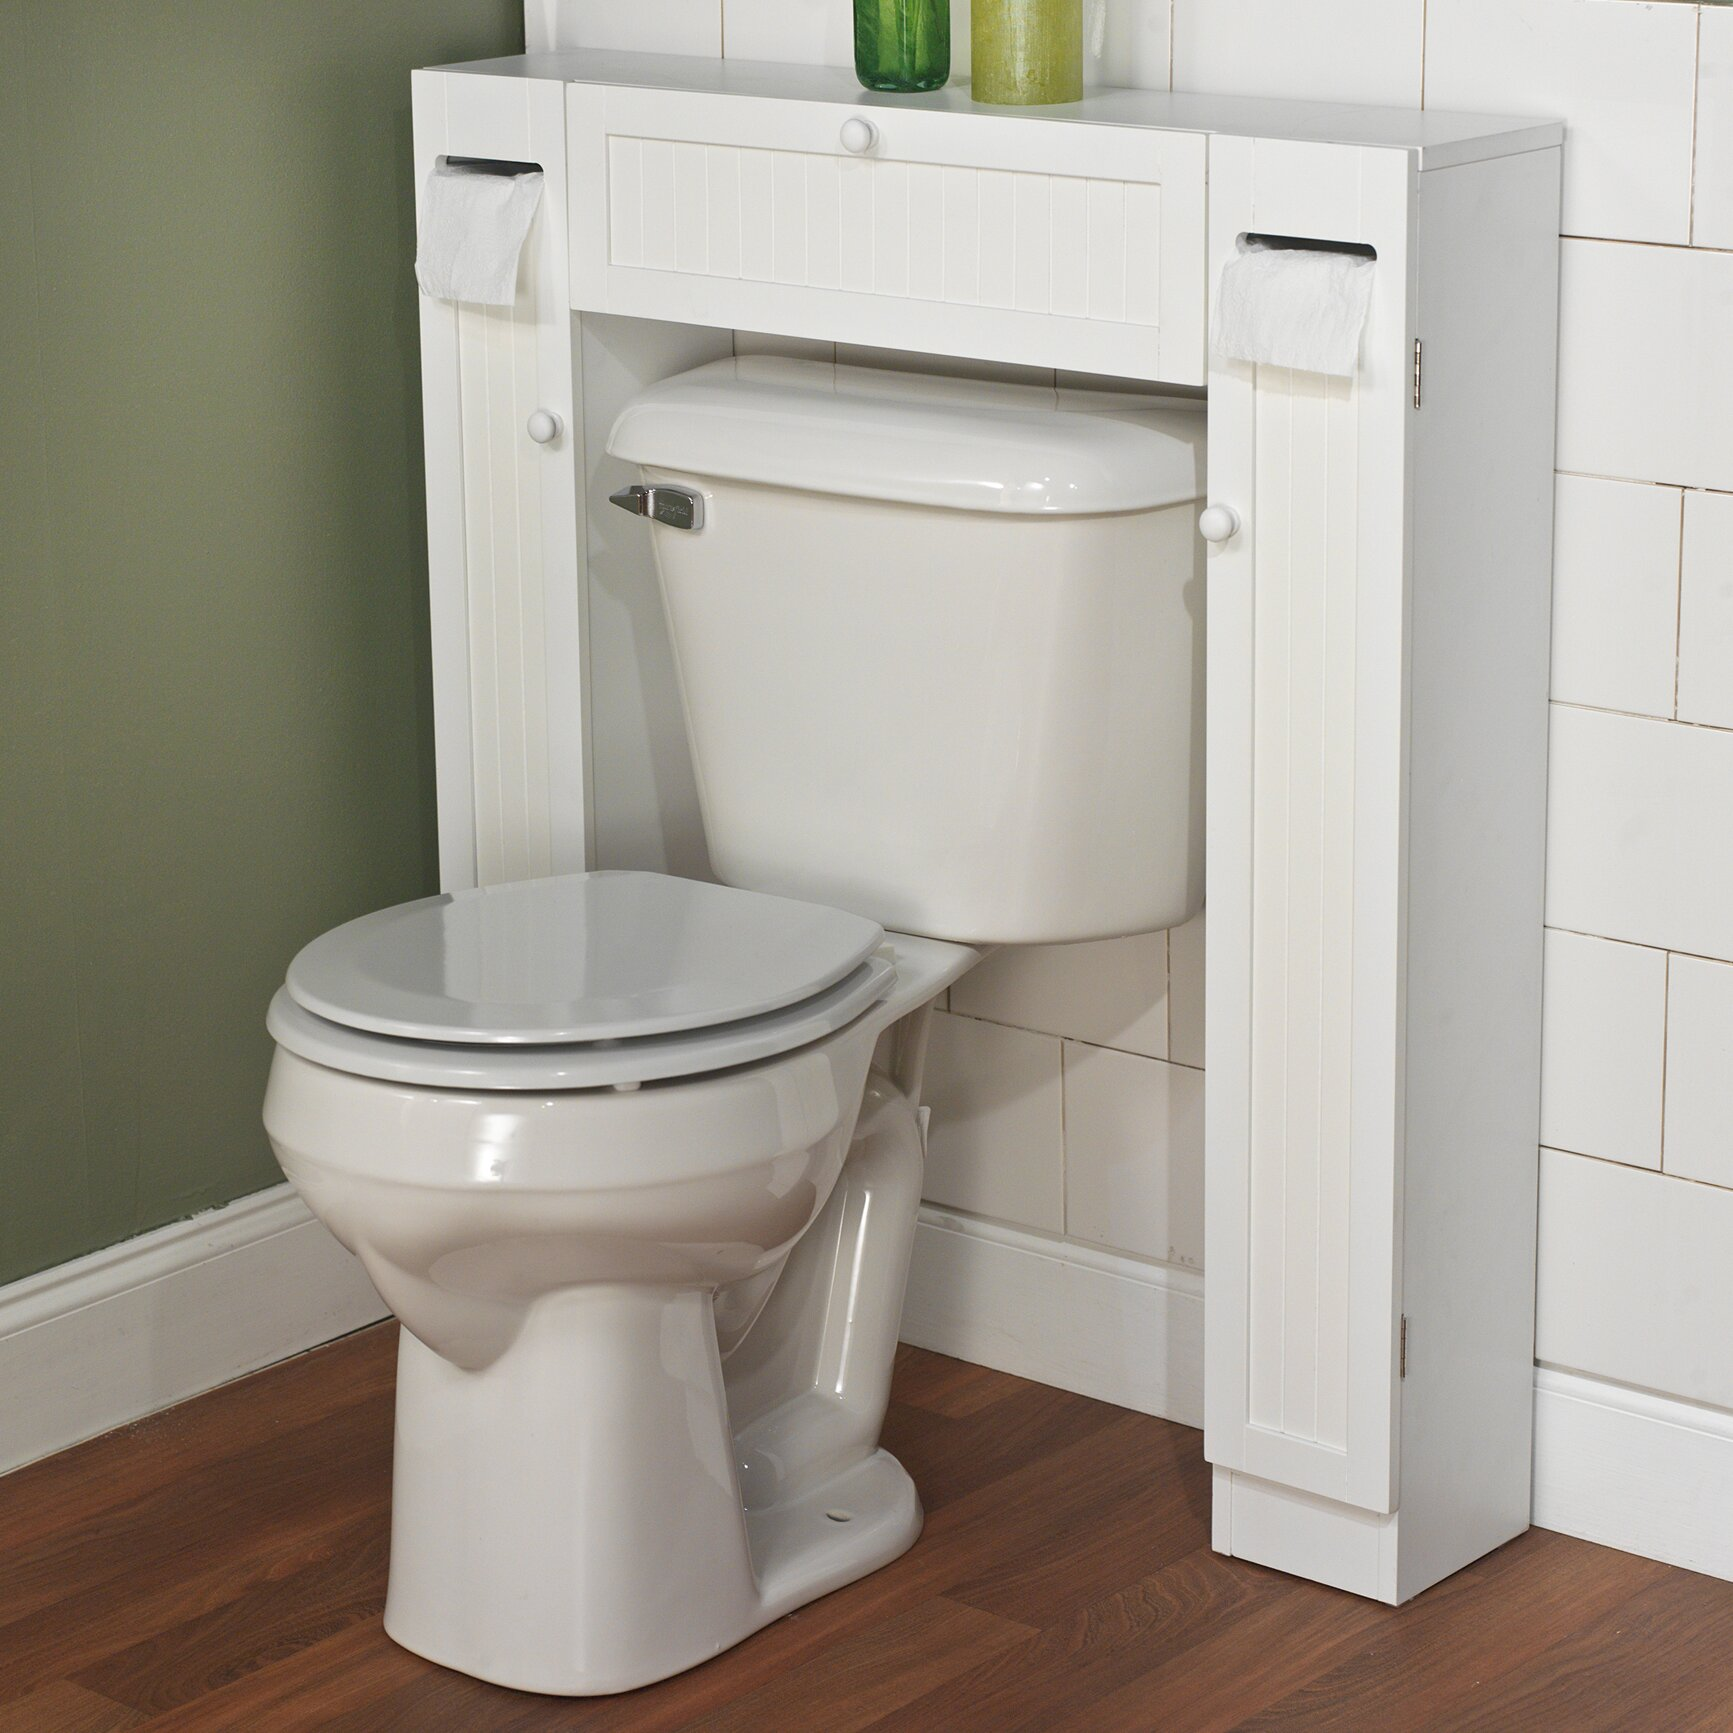 "tms free standing "" w x ."" h over the toilet storage, Bathroom decor"